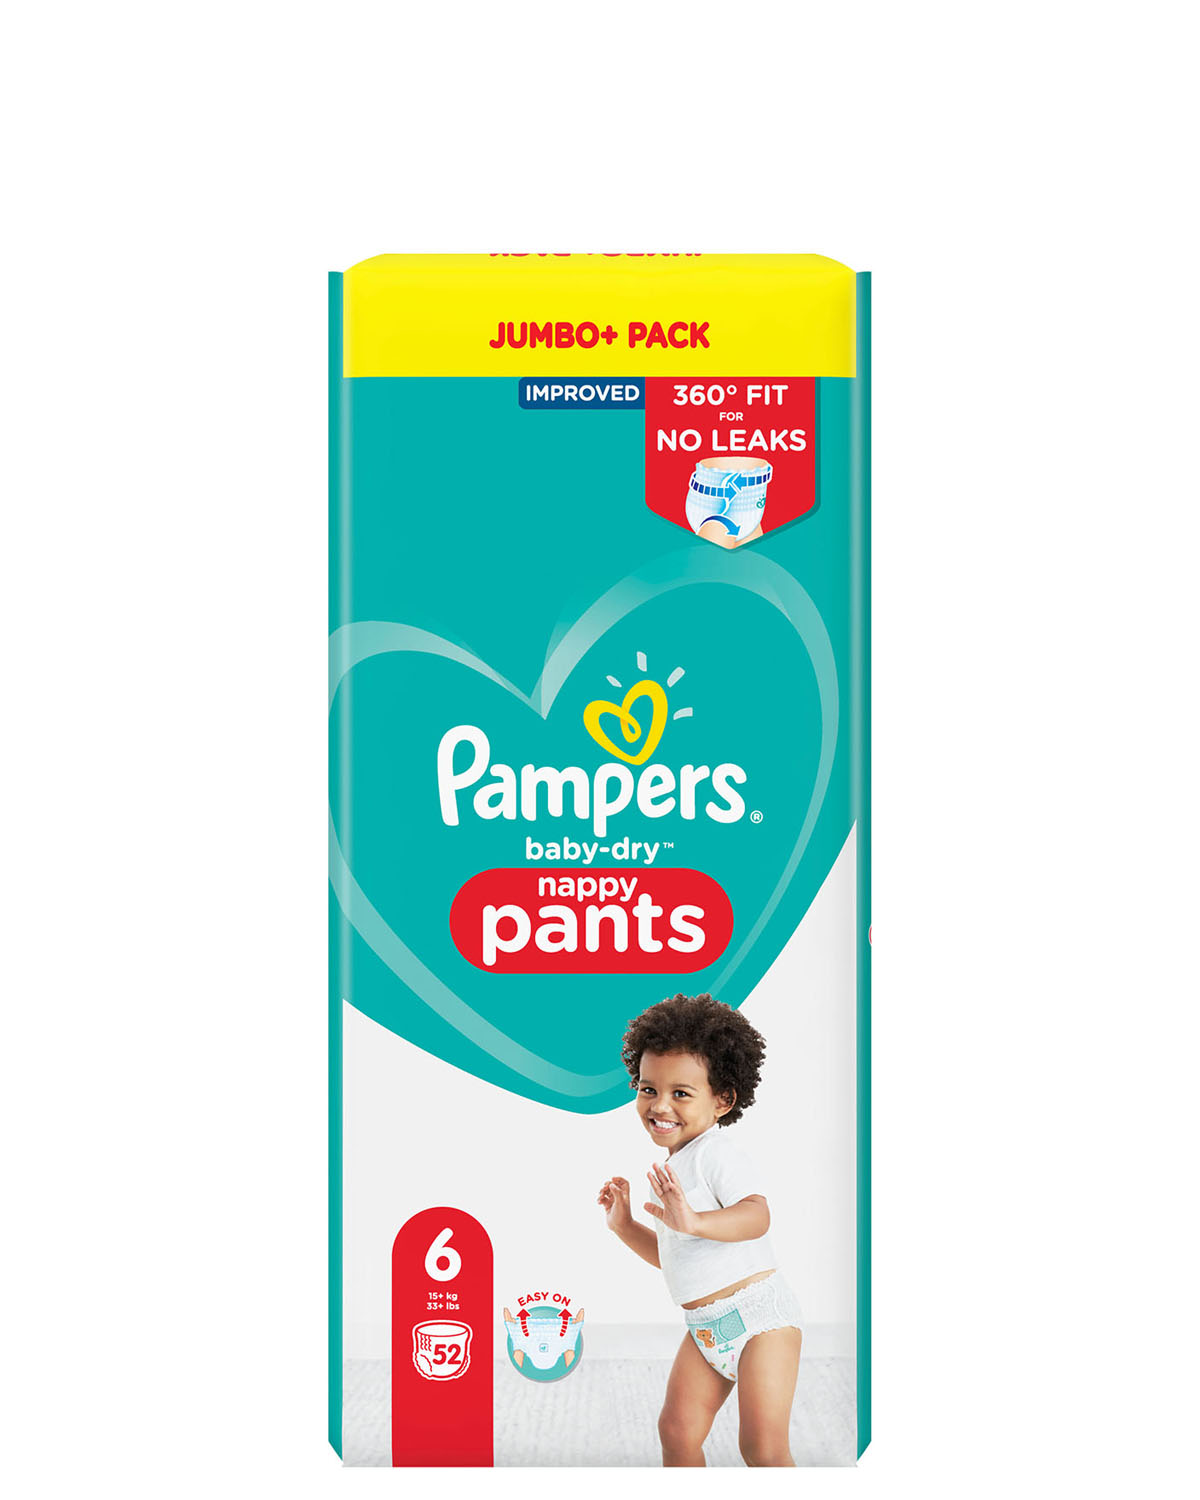 Pampers Baby Dry Pants Jumbo Cube Pack Size: 6 - 52 Nappies